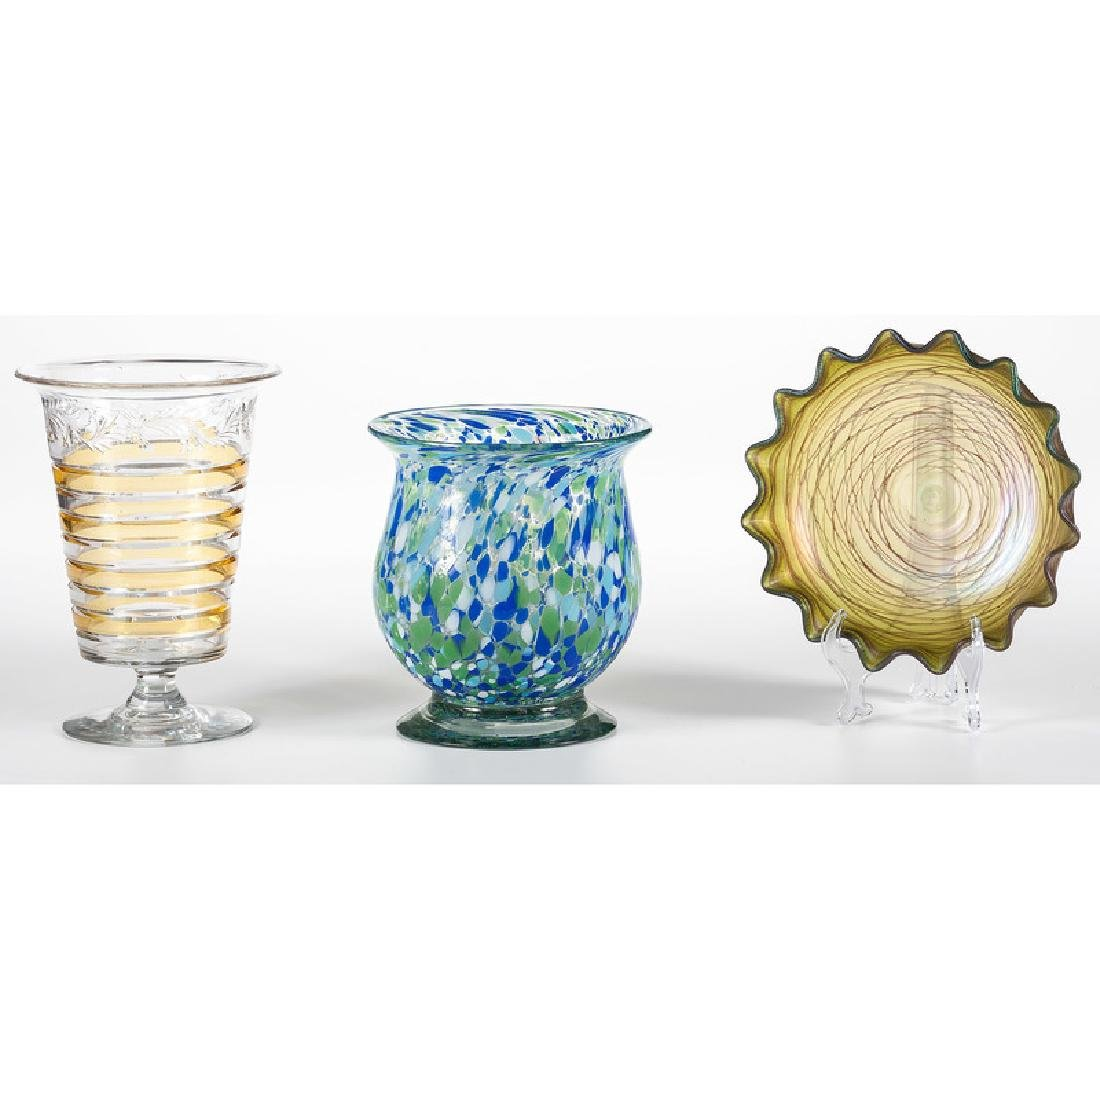 Art Glass Vase and Bowl, Plus